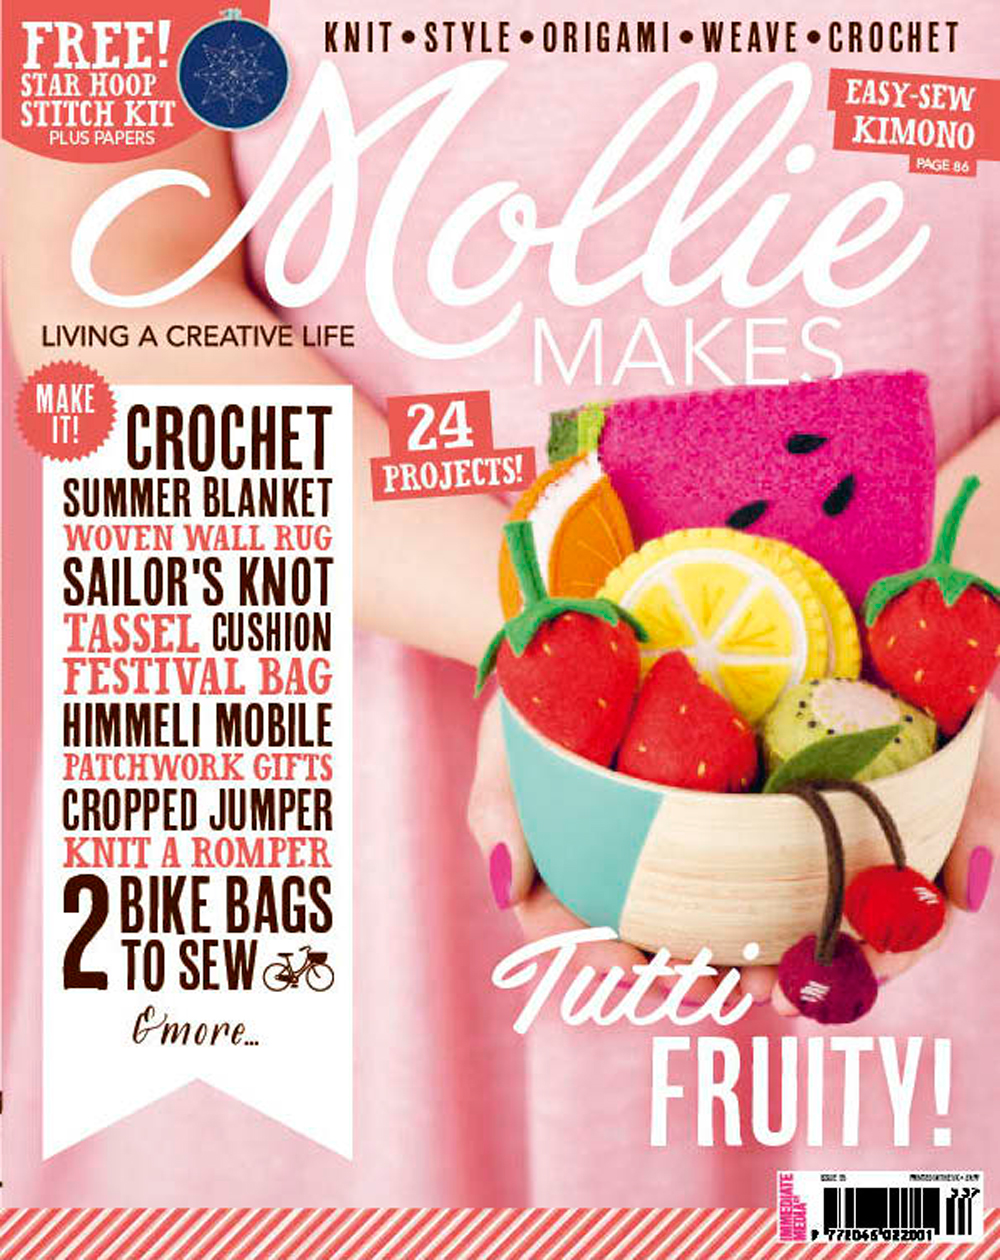 FEATURE-_-Mollie-Makes-Issue-53-2